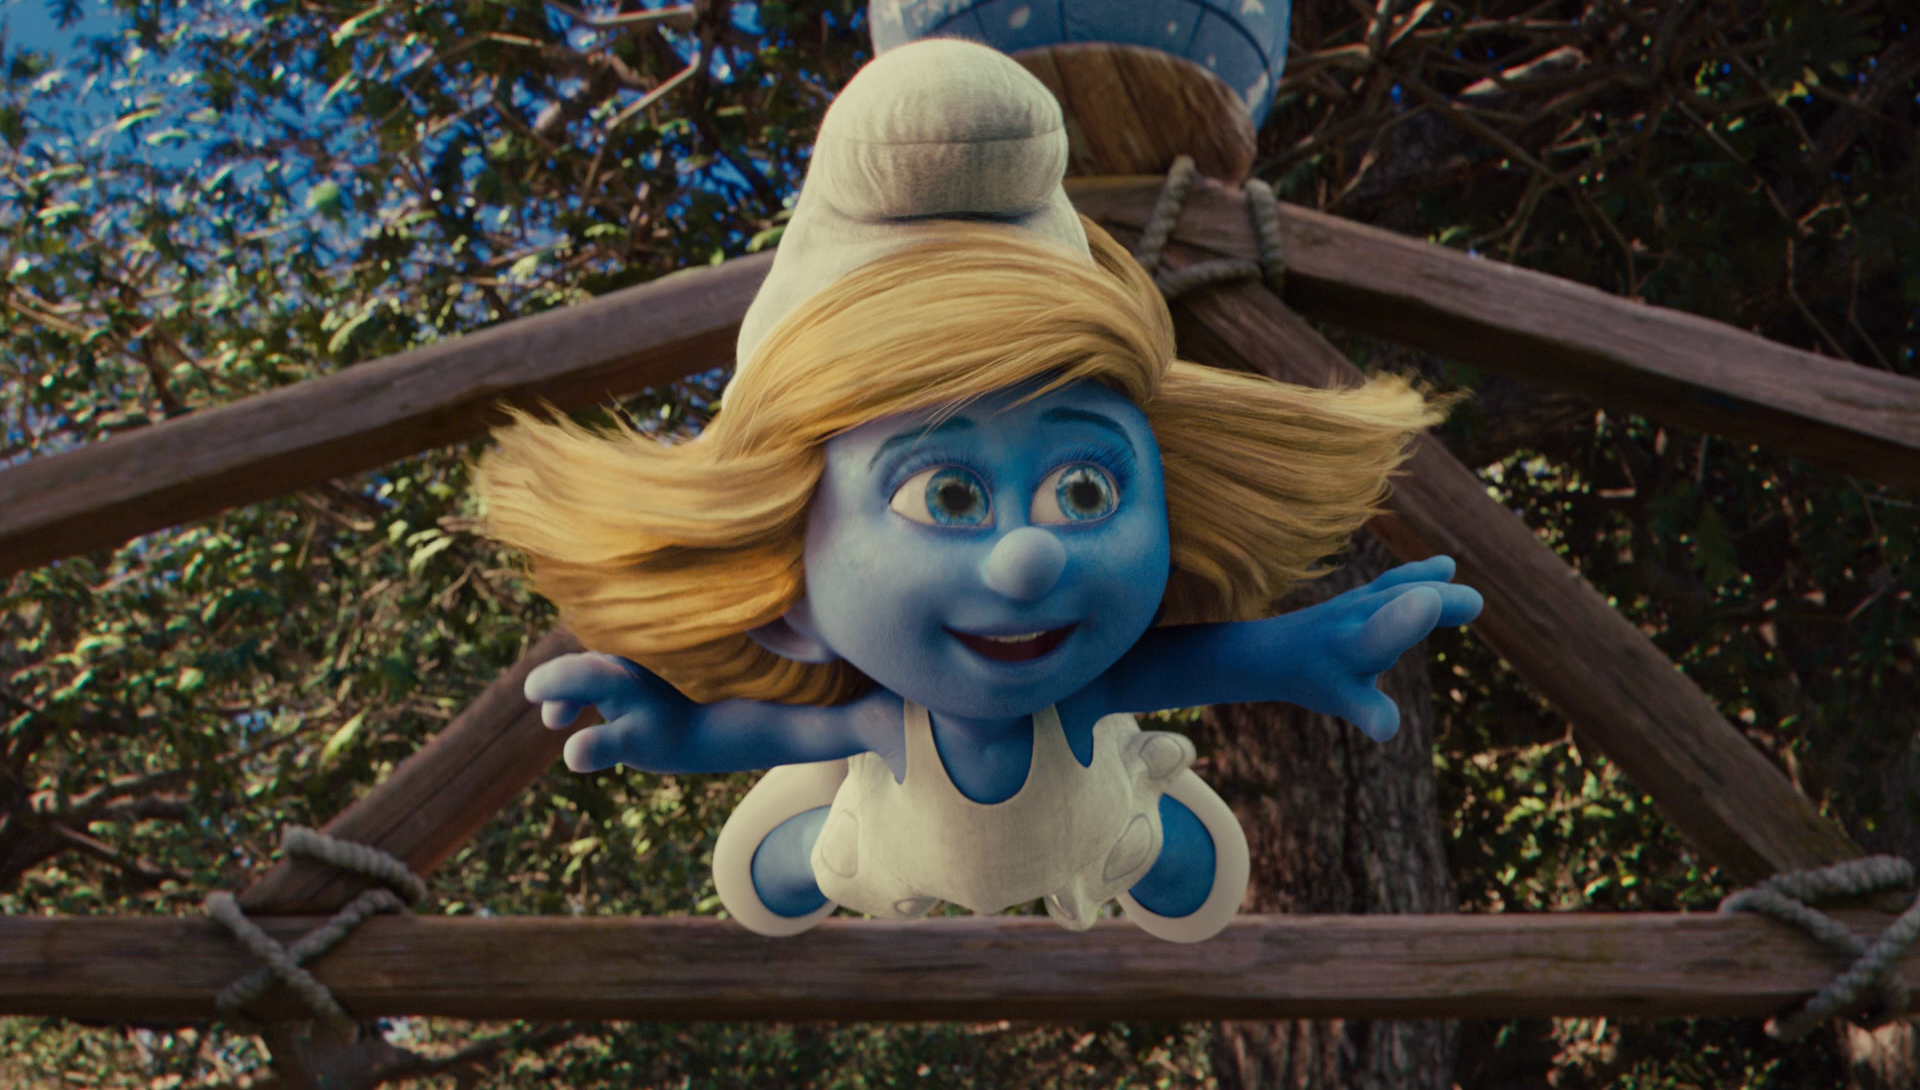 the smurfs 4k uhd review the nerd mentality